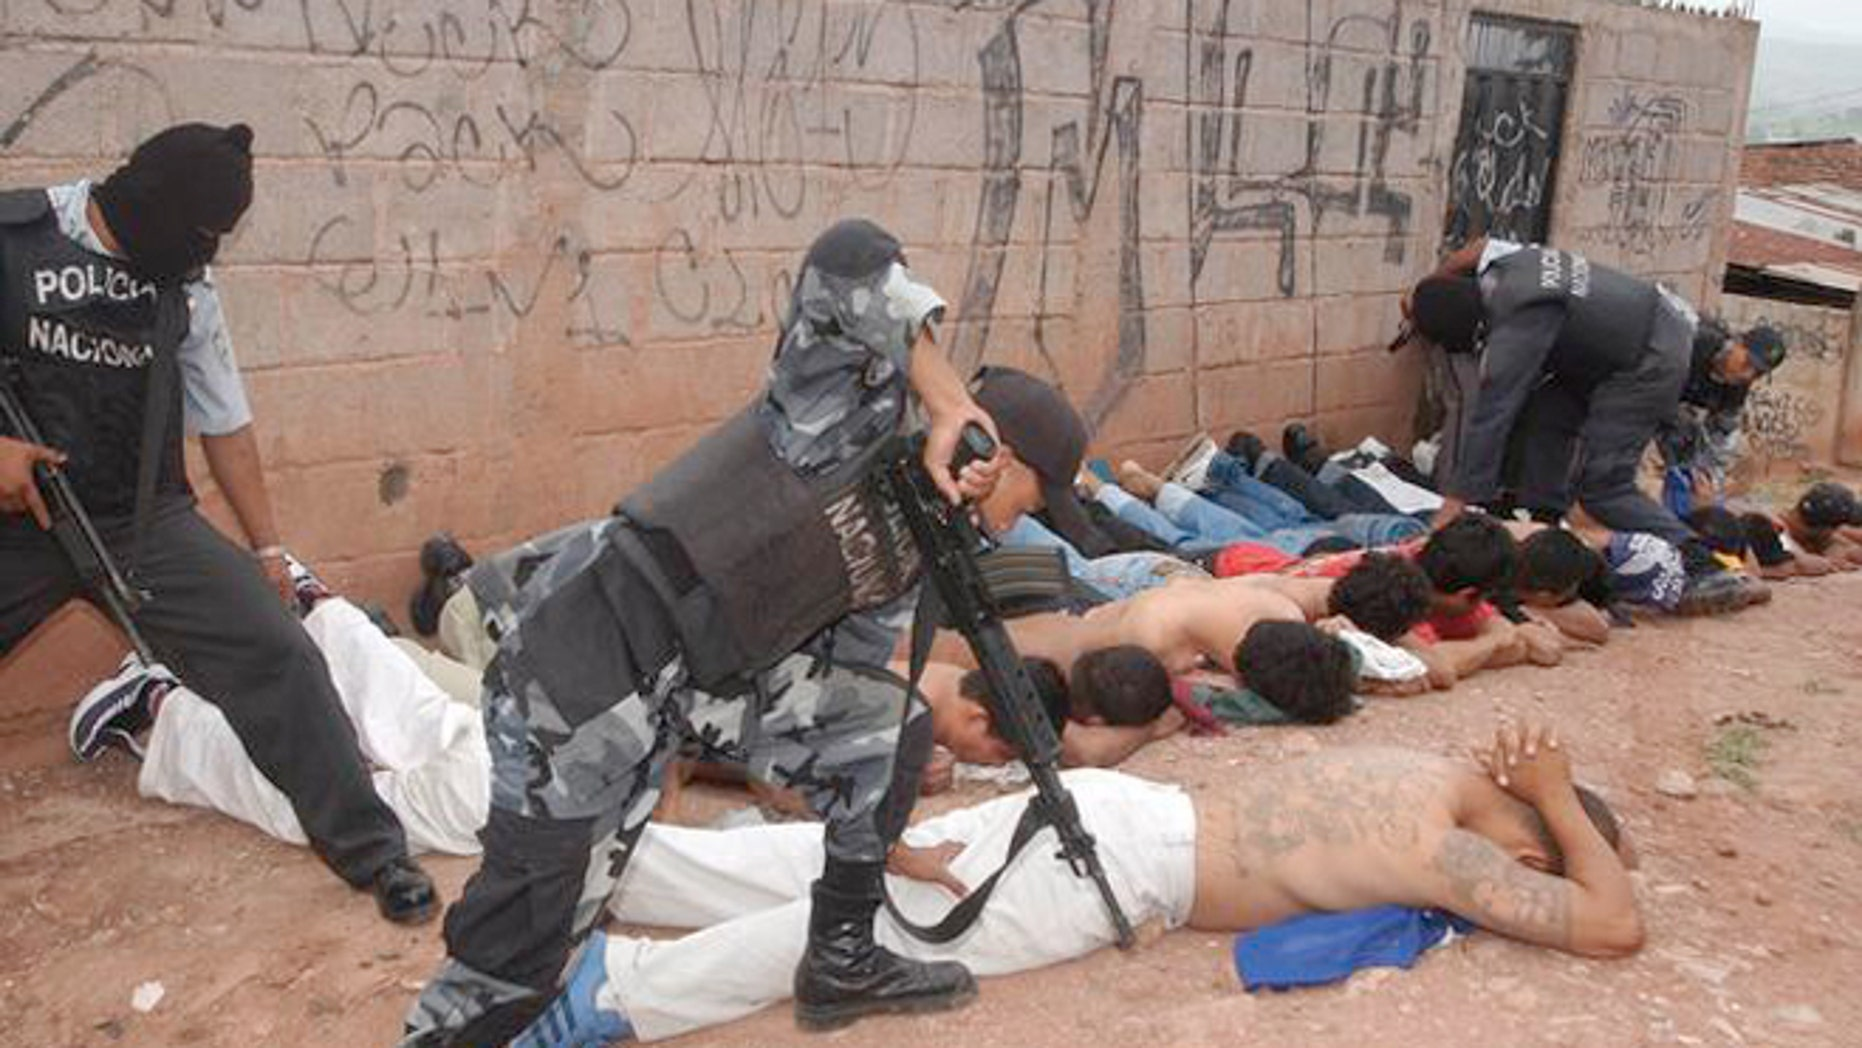 Police officers detain members of the Mara 18 and MS 13 gangs during the tour of President Ricardo Maduro and Security Minister Oscar Alvarez to the Colonia Bellavista neighborhood in Tegucigalpa, Honduras, Wednesday, July 2, 2003. The president sent a law to  Congress on Tuesday, prohibiting gangs in the country.(AP Photo/Antonio Romero)